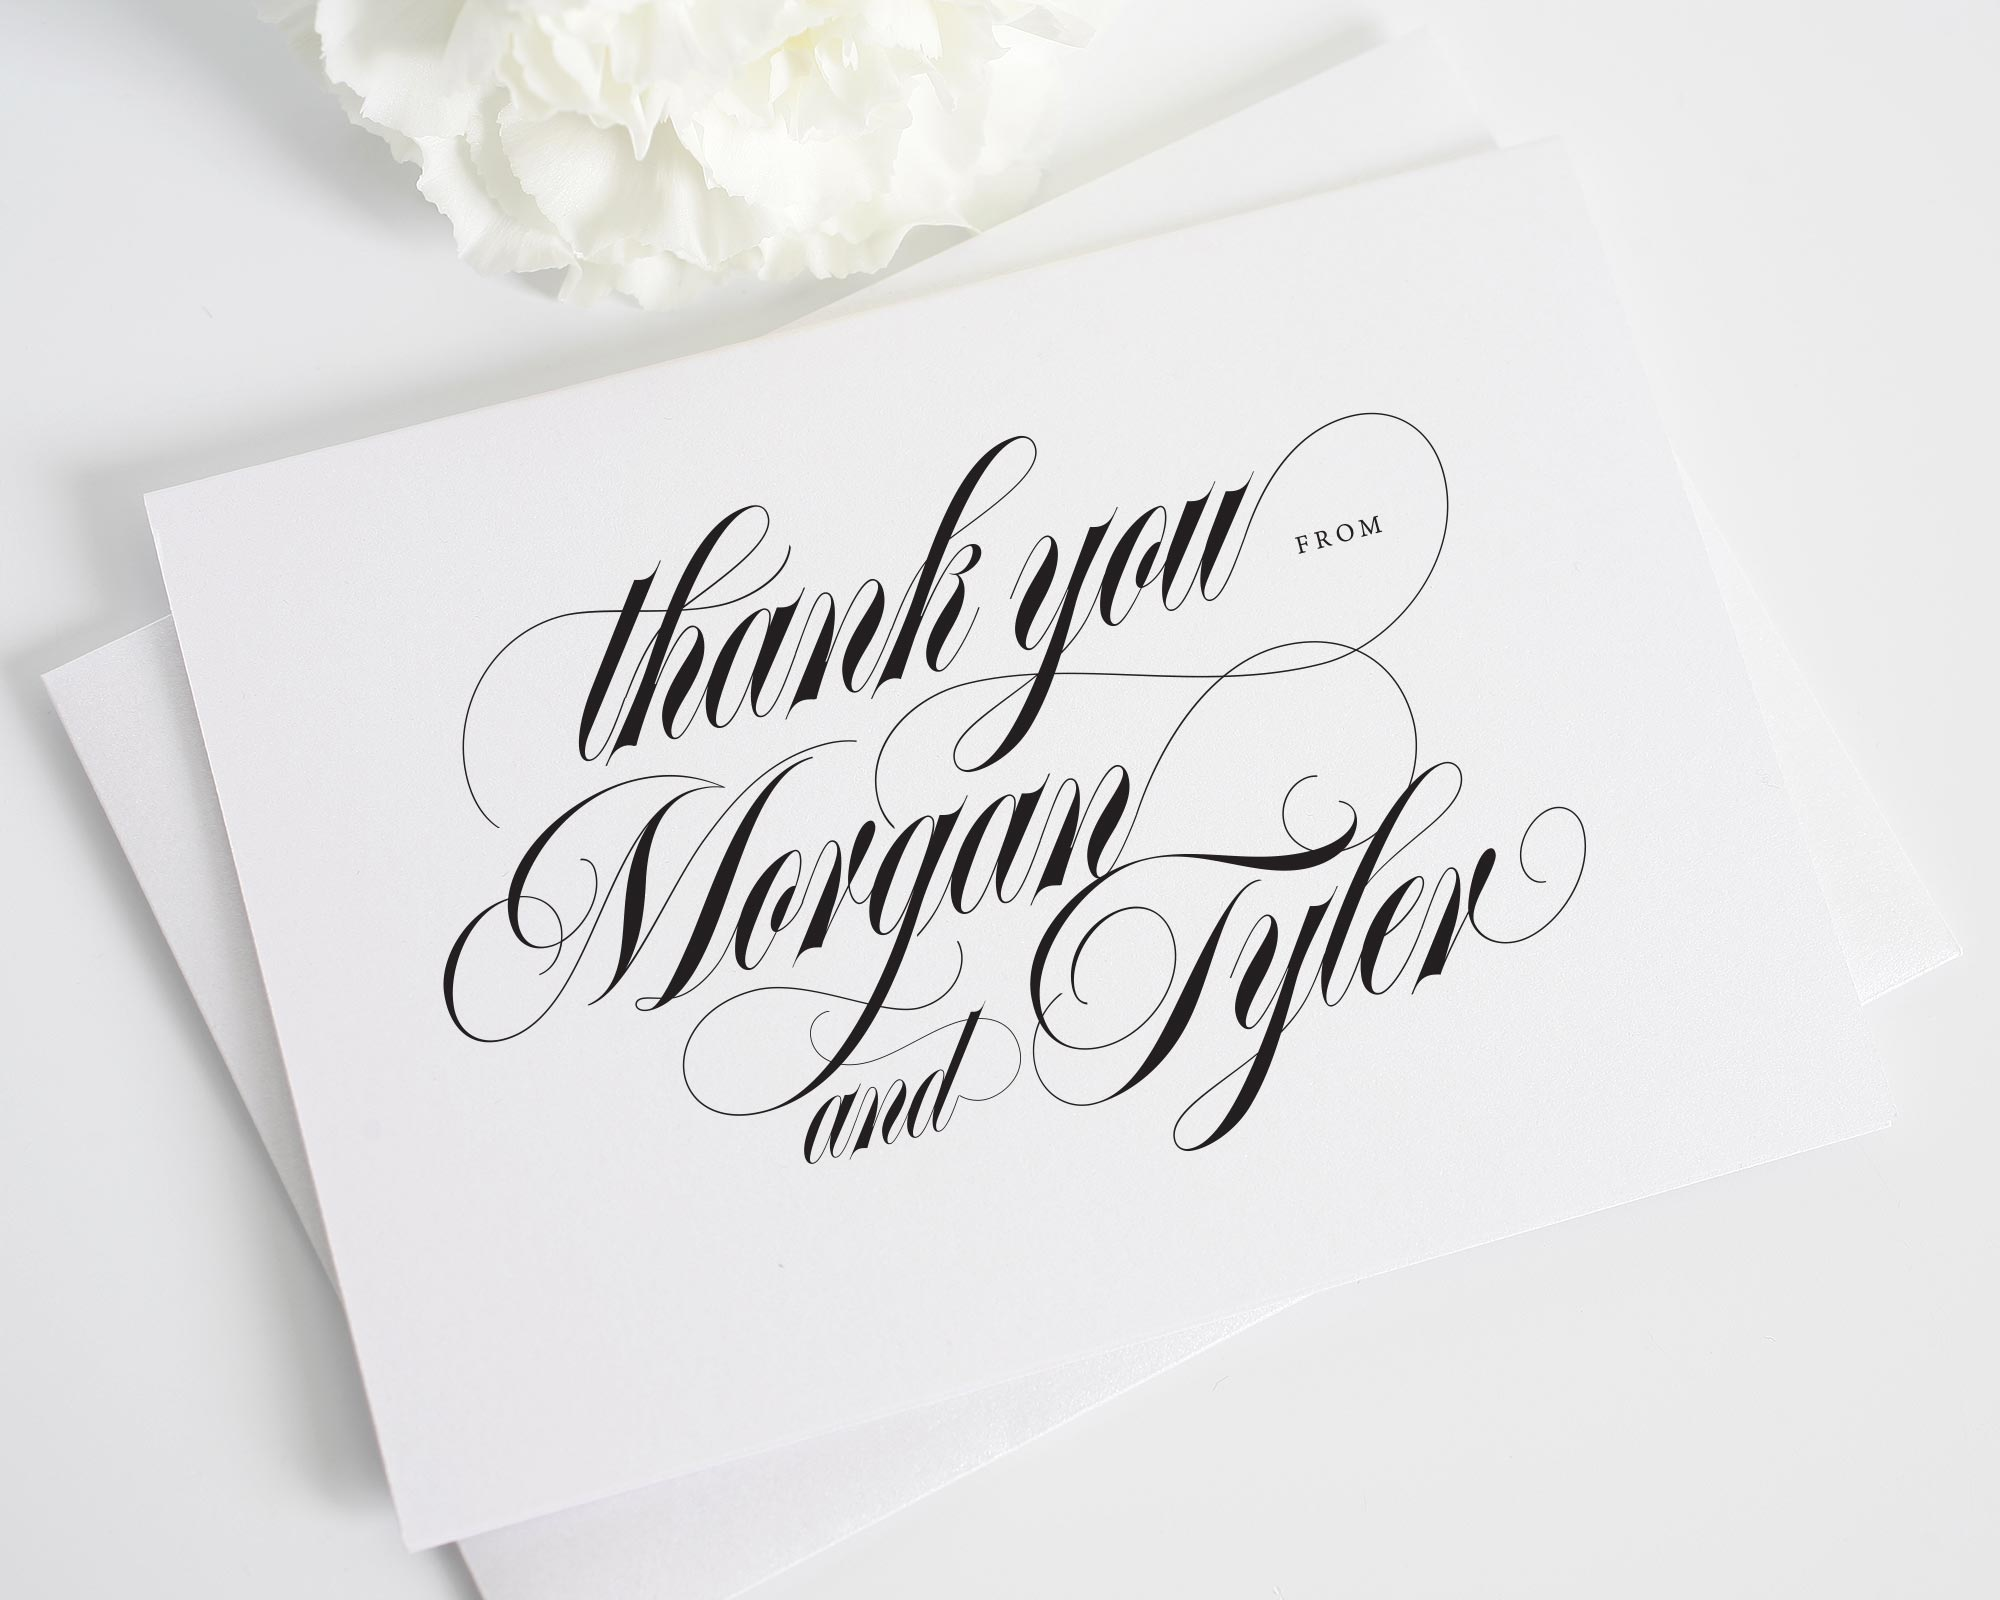 Calligraphy names thank you cards thank you cards by shine Thank you in calligraphy writing